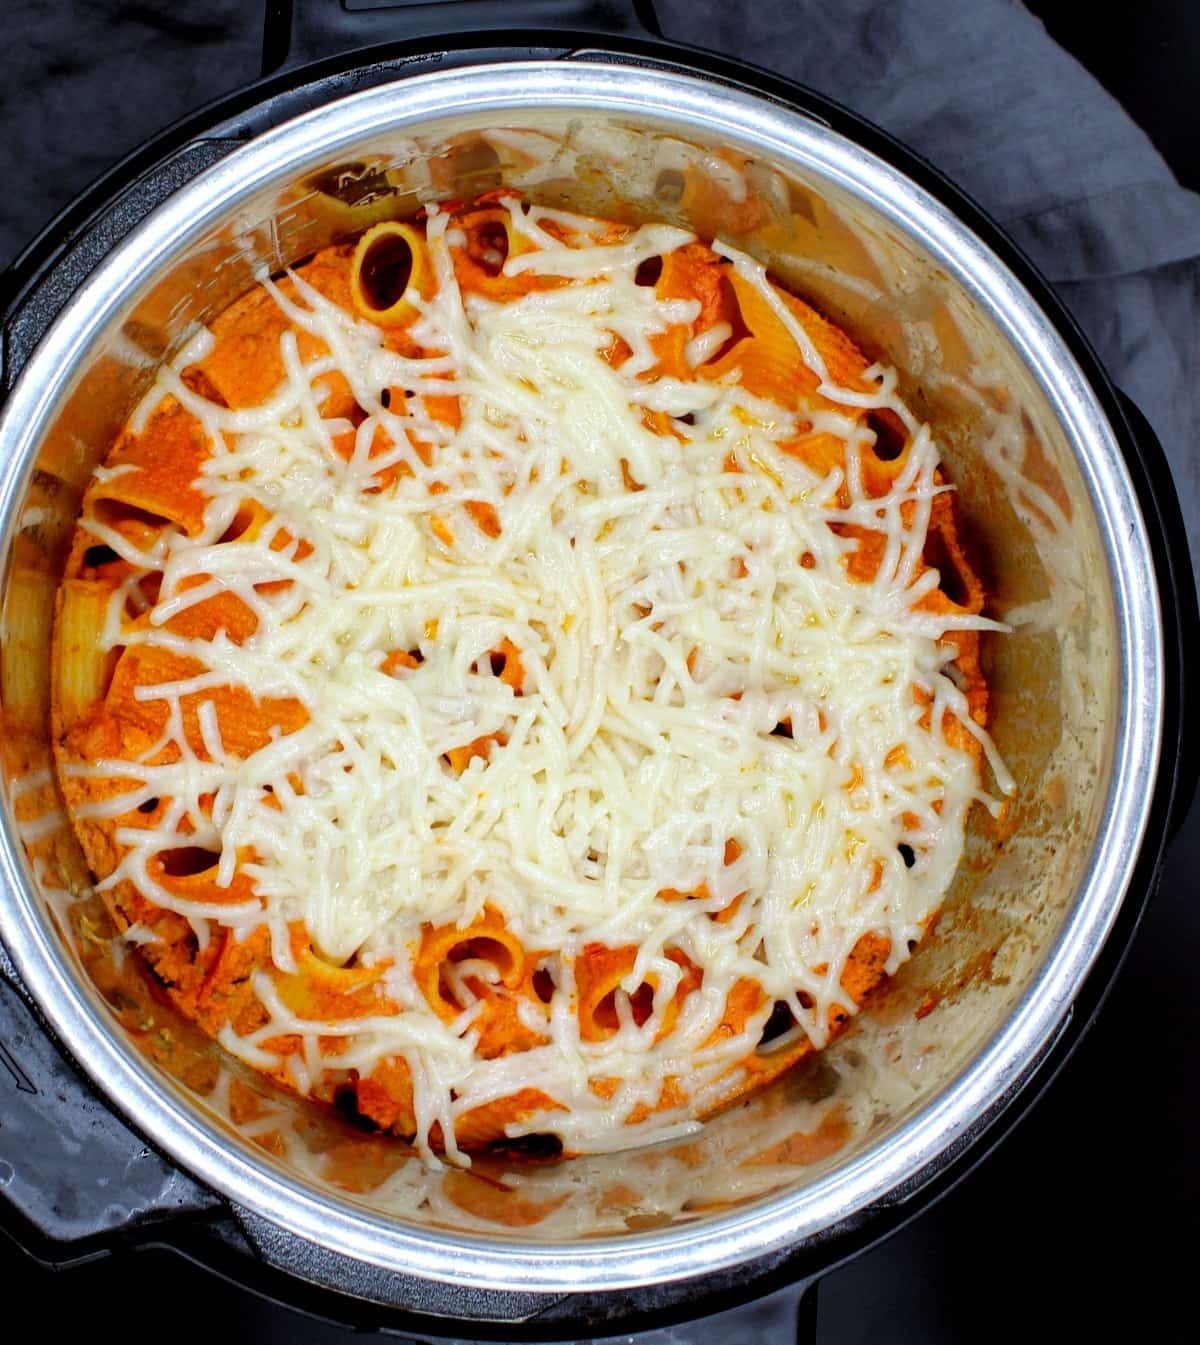 An overhead shot of an Instant Pot with a creamy, cheesy vegan pasta bake with rigatoni, shreds of vegan mozzarella cheese and a gray napkin.